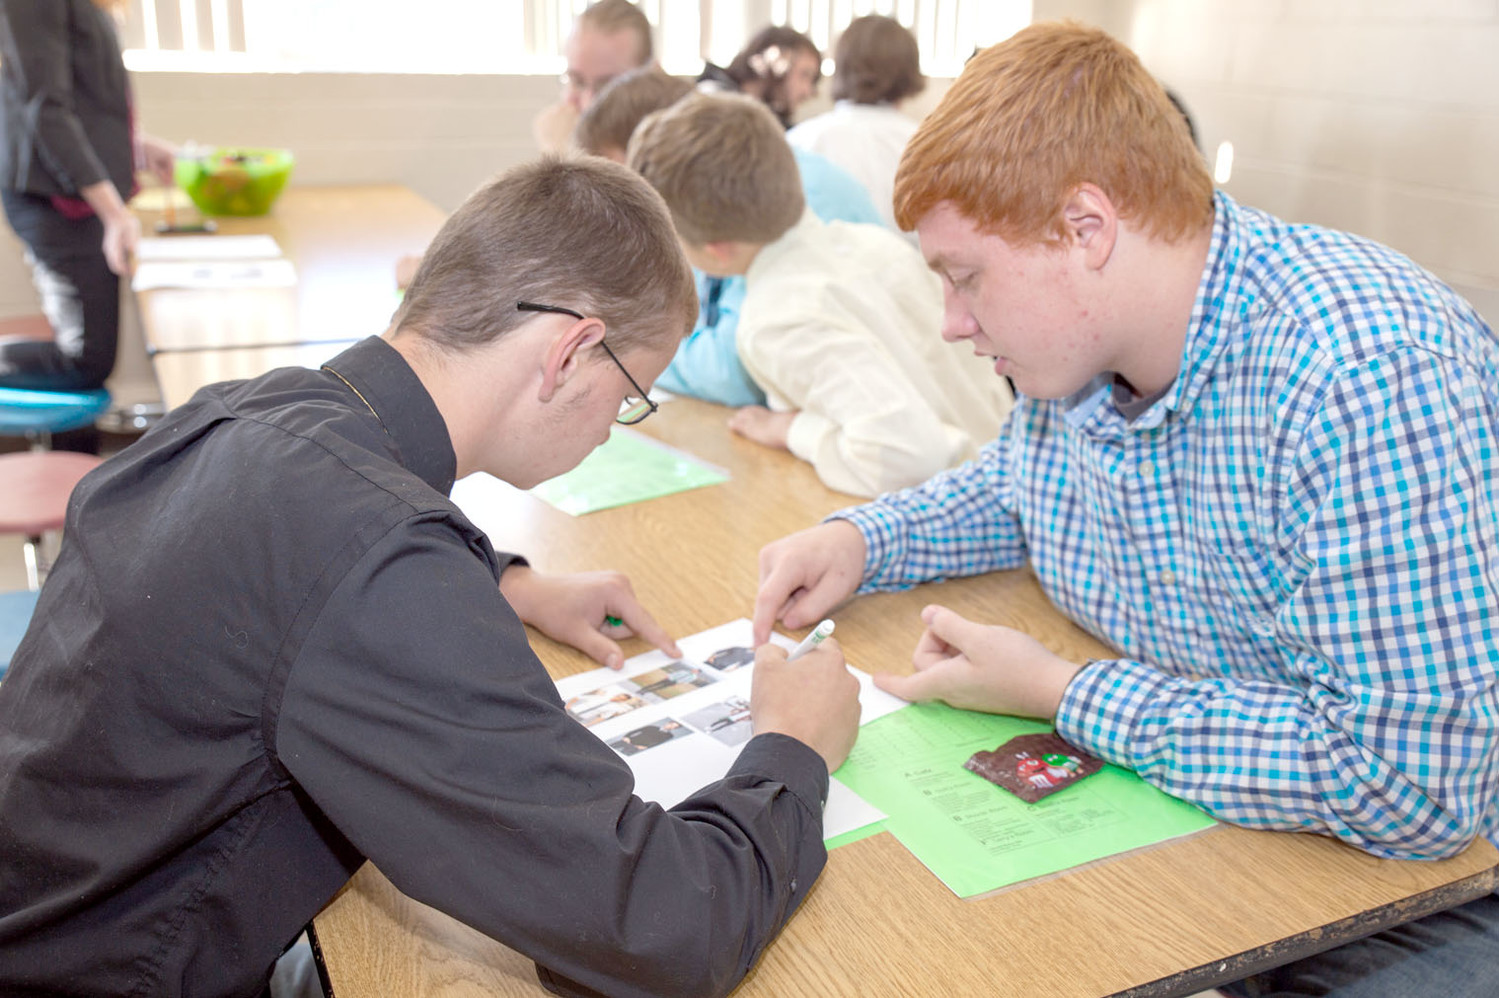 GOAL ACADEMY STUDENTS Mason Roberts, left, and Dylan Psyhos participate in an activity to identify things to avoid wearing to an interview.